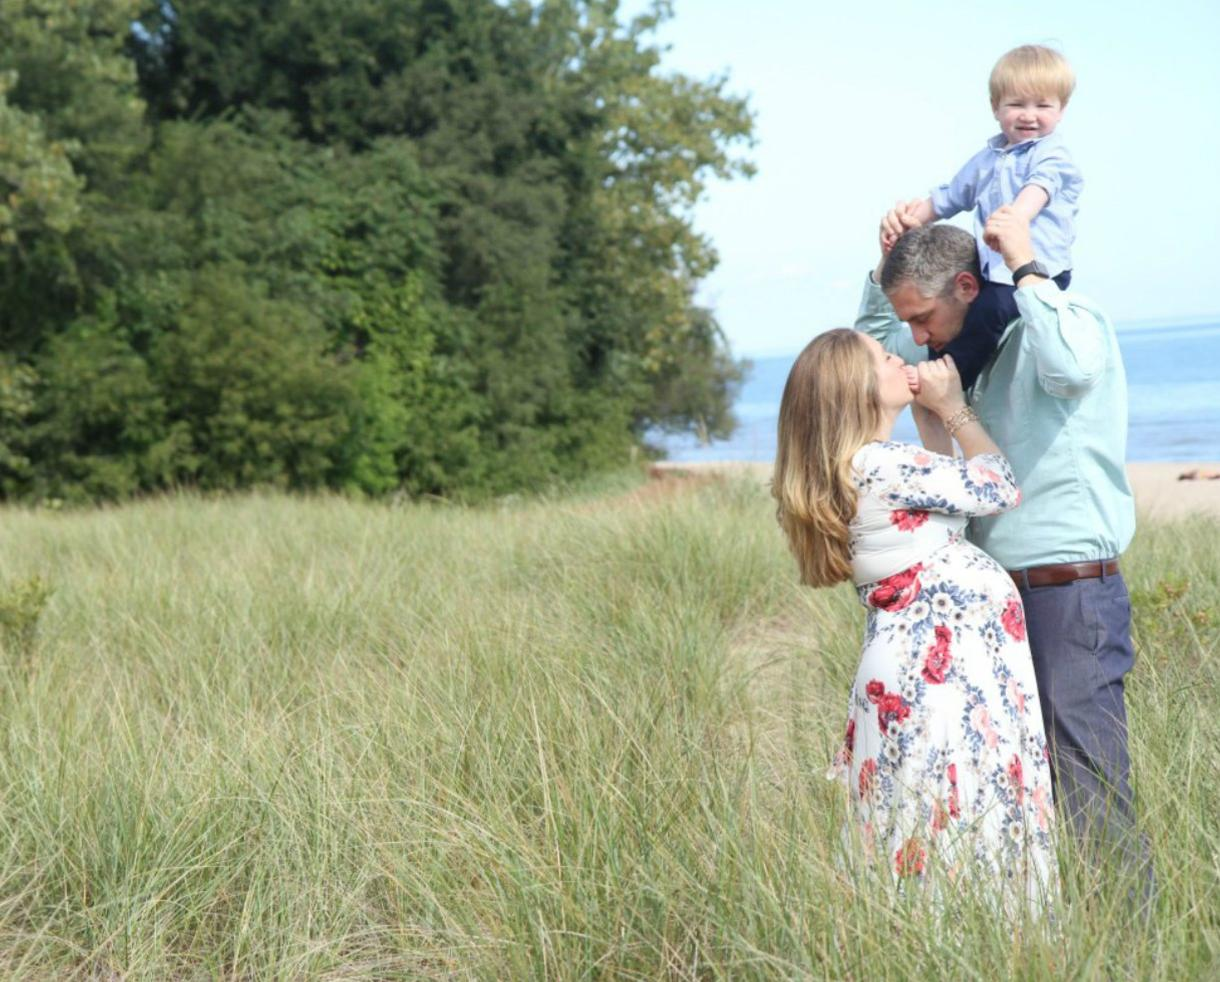 On-Location Newborn, Child or Family Photo Shoot from Schrader Photographs